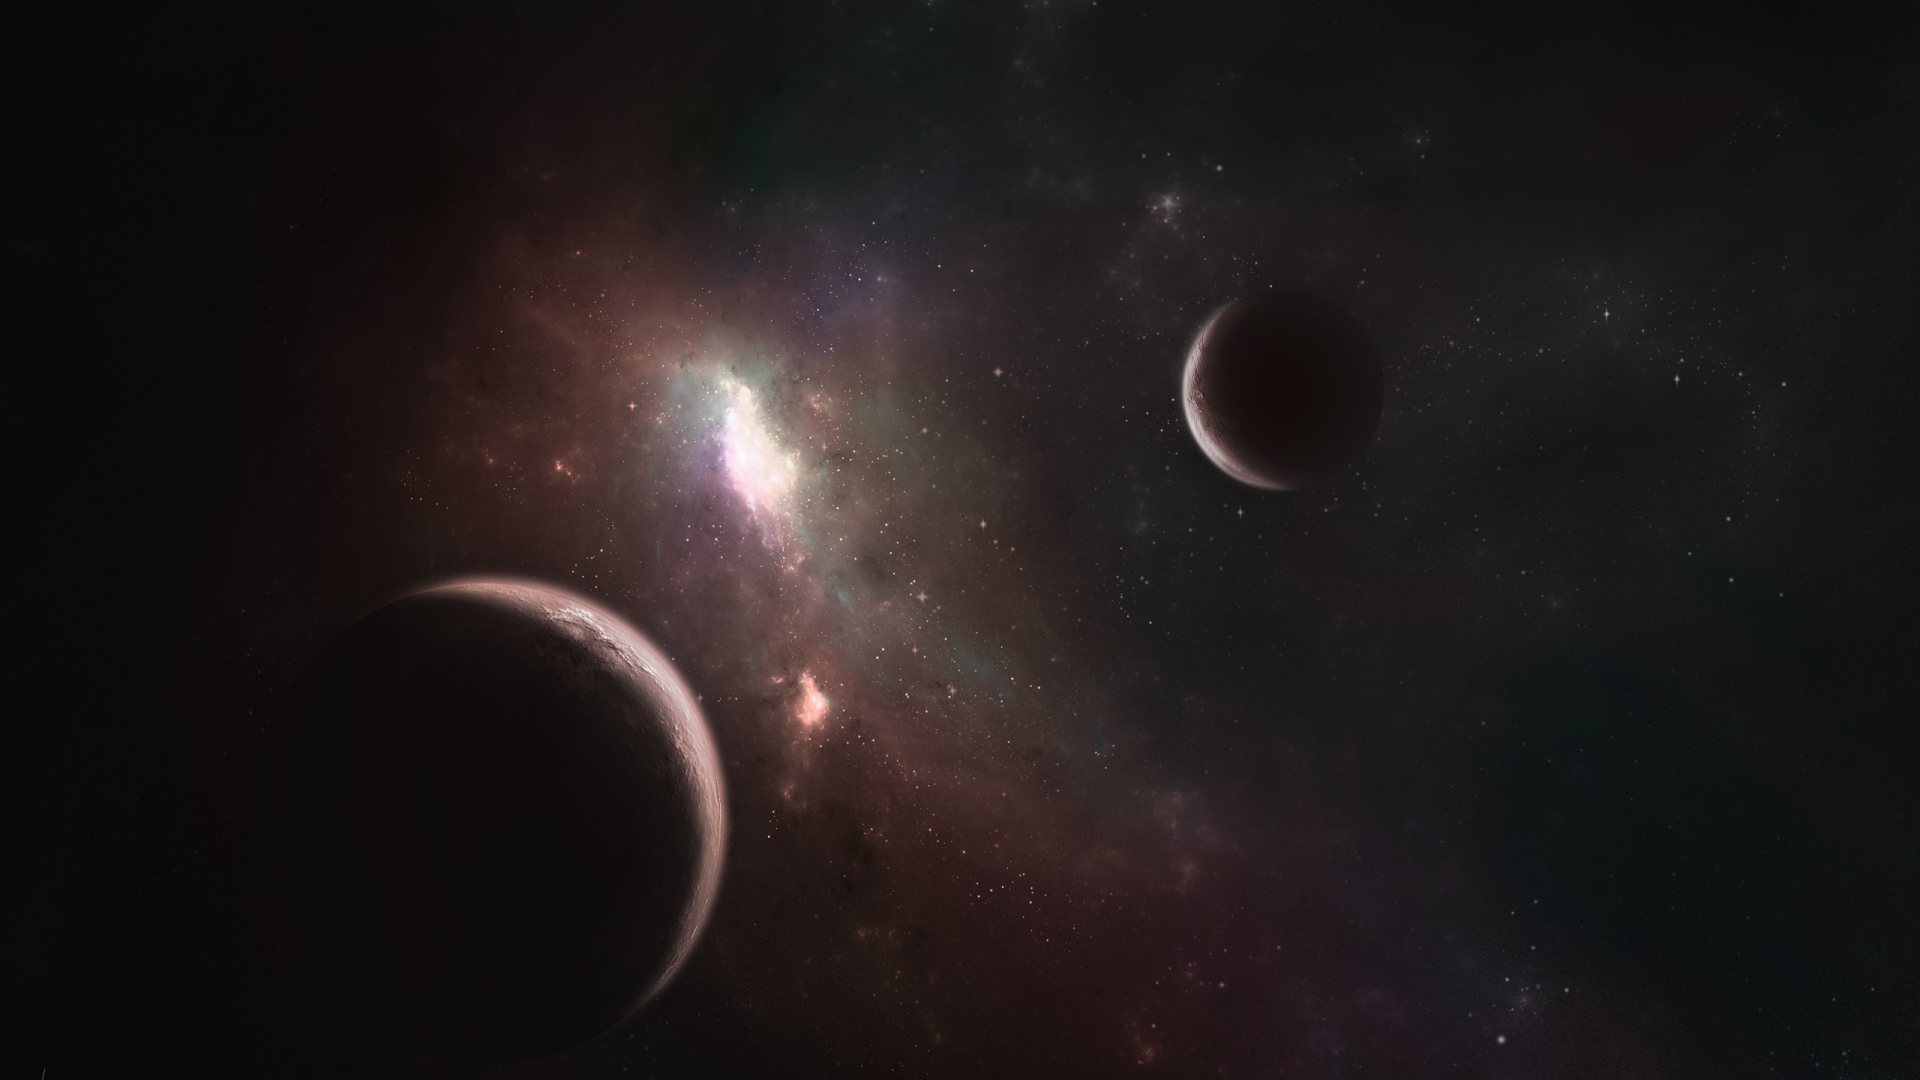 Outer Space Planet Wallpaper Space 1920x1080 highreshdwallpaperscom 1920x1080